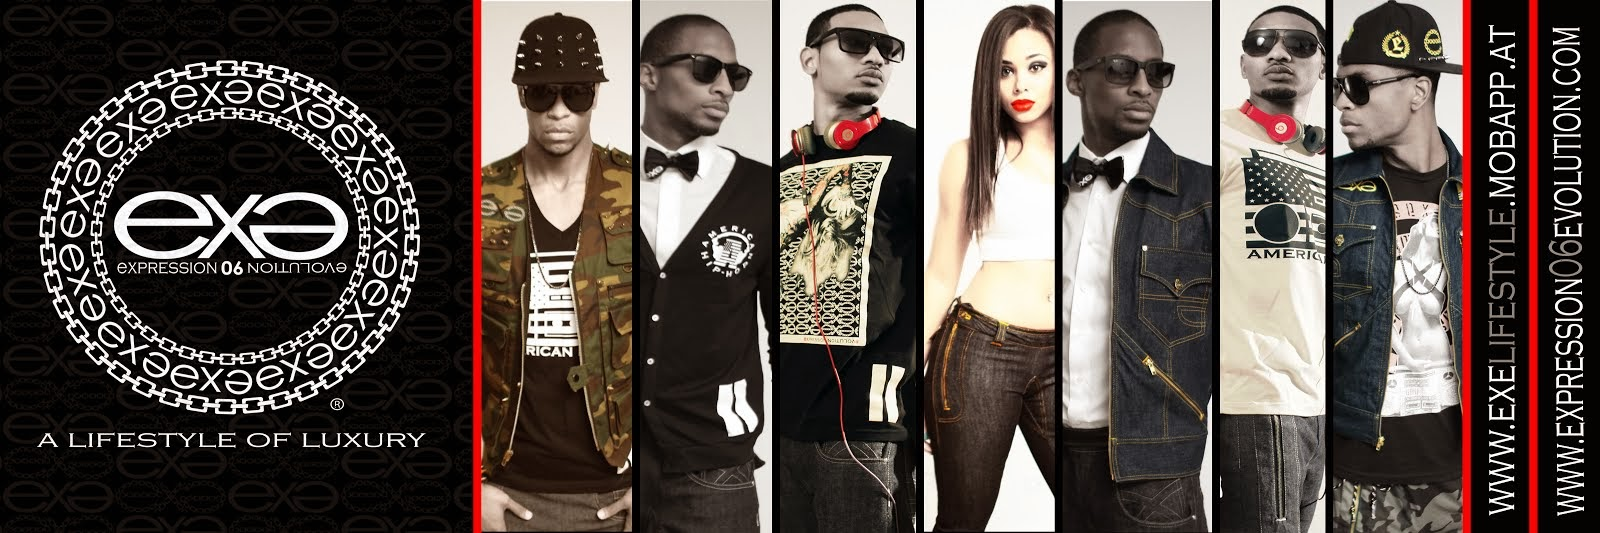 To Shop Expression 06 Evolution Luxury Clothing Brand >>> (CLICK ON PICTURE)